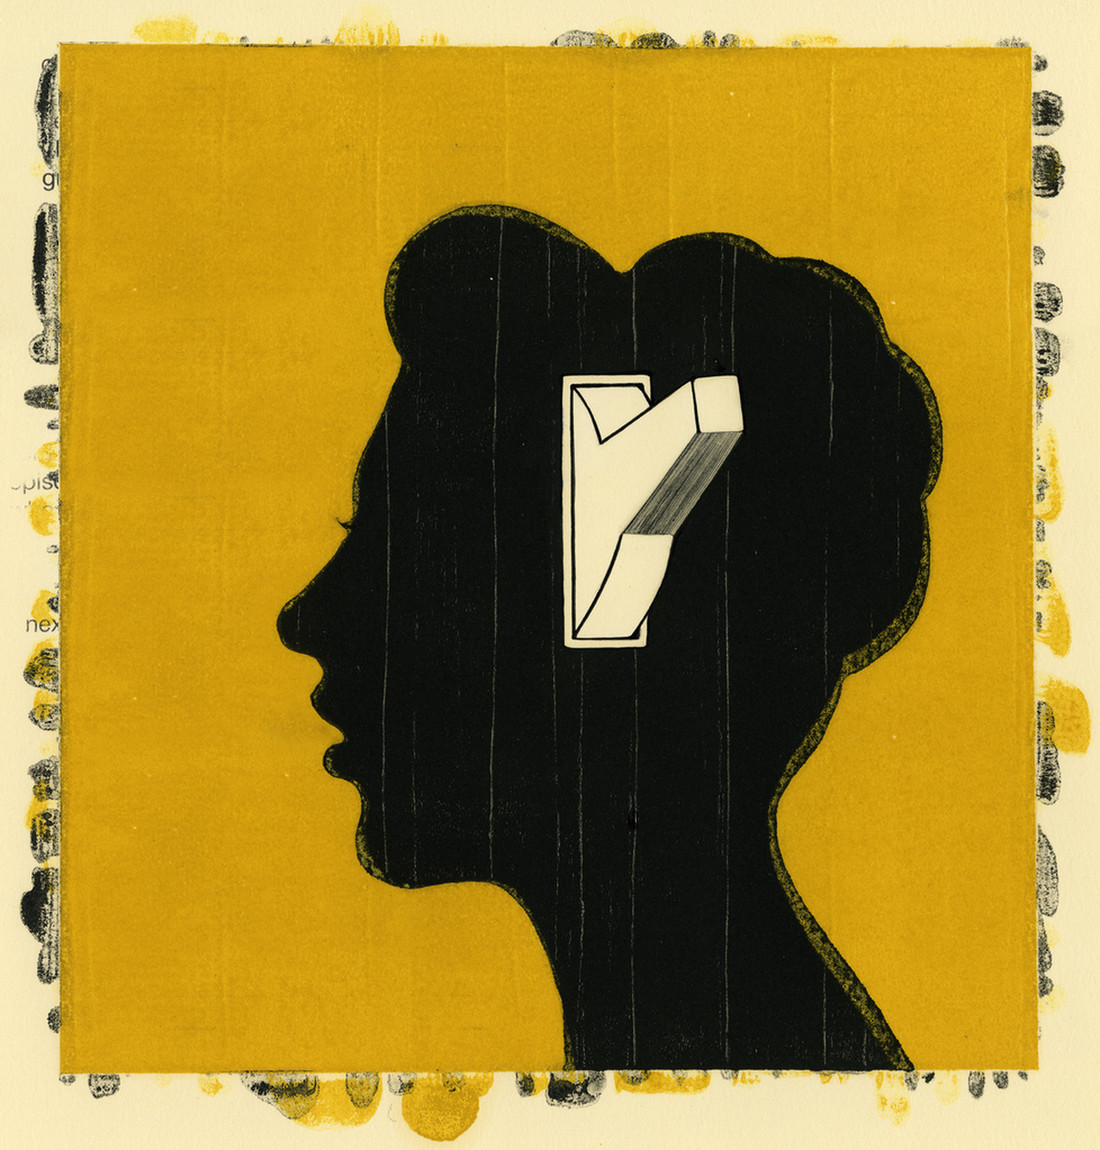 Silhouette of a woman's head with a light switch in the center of it